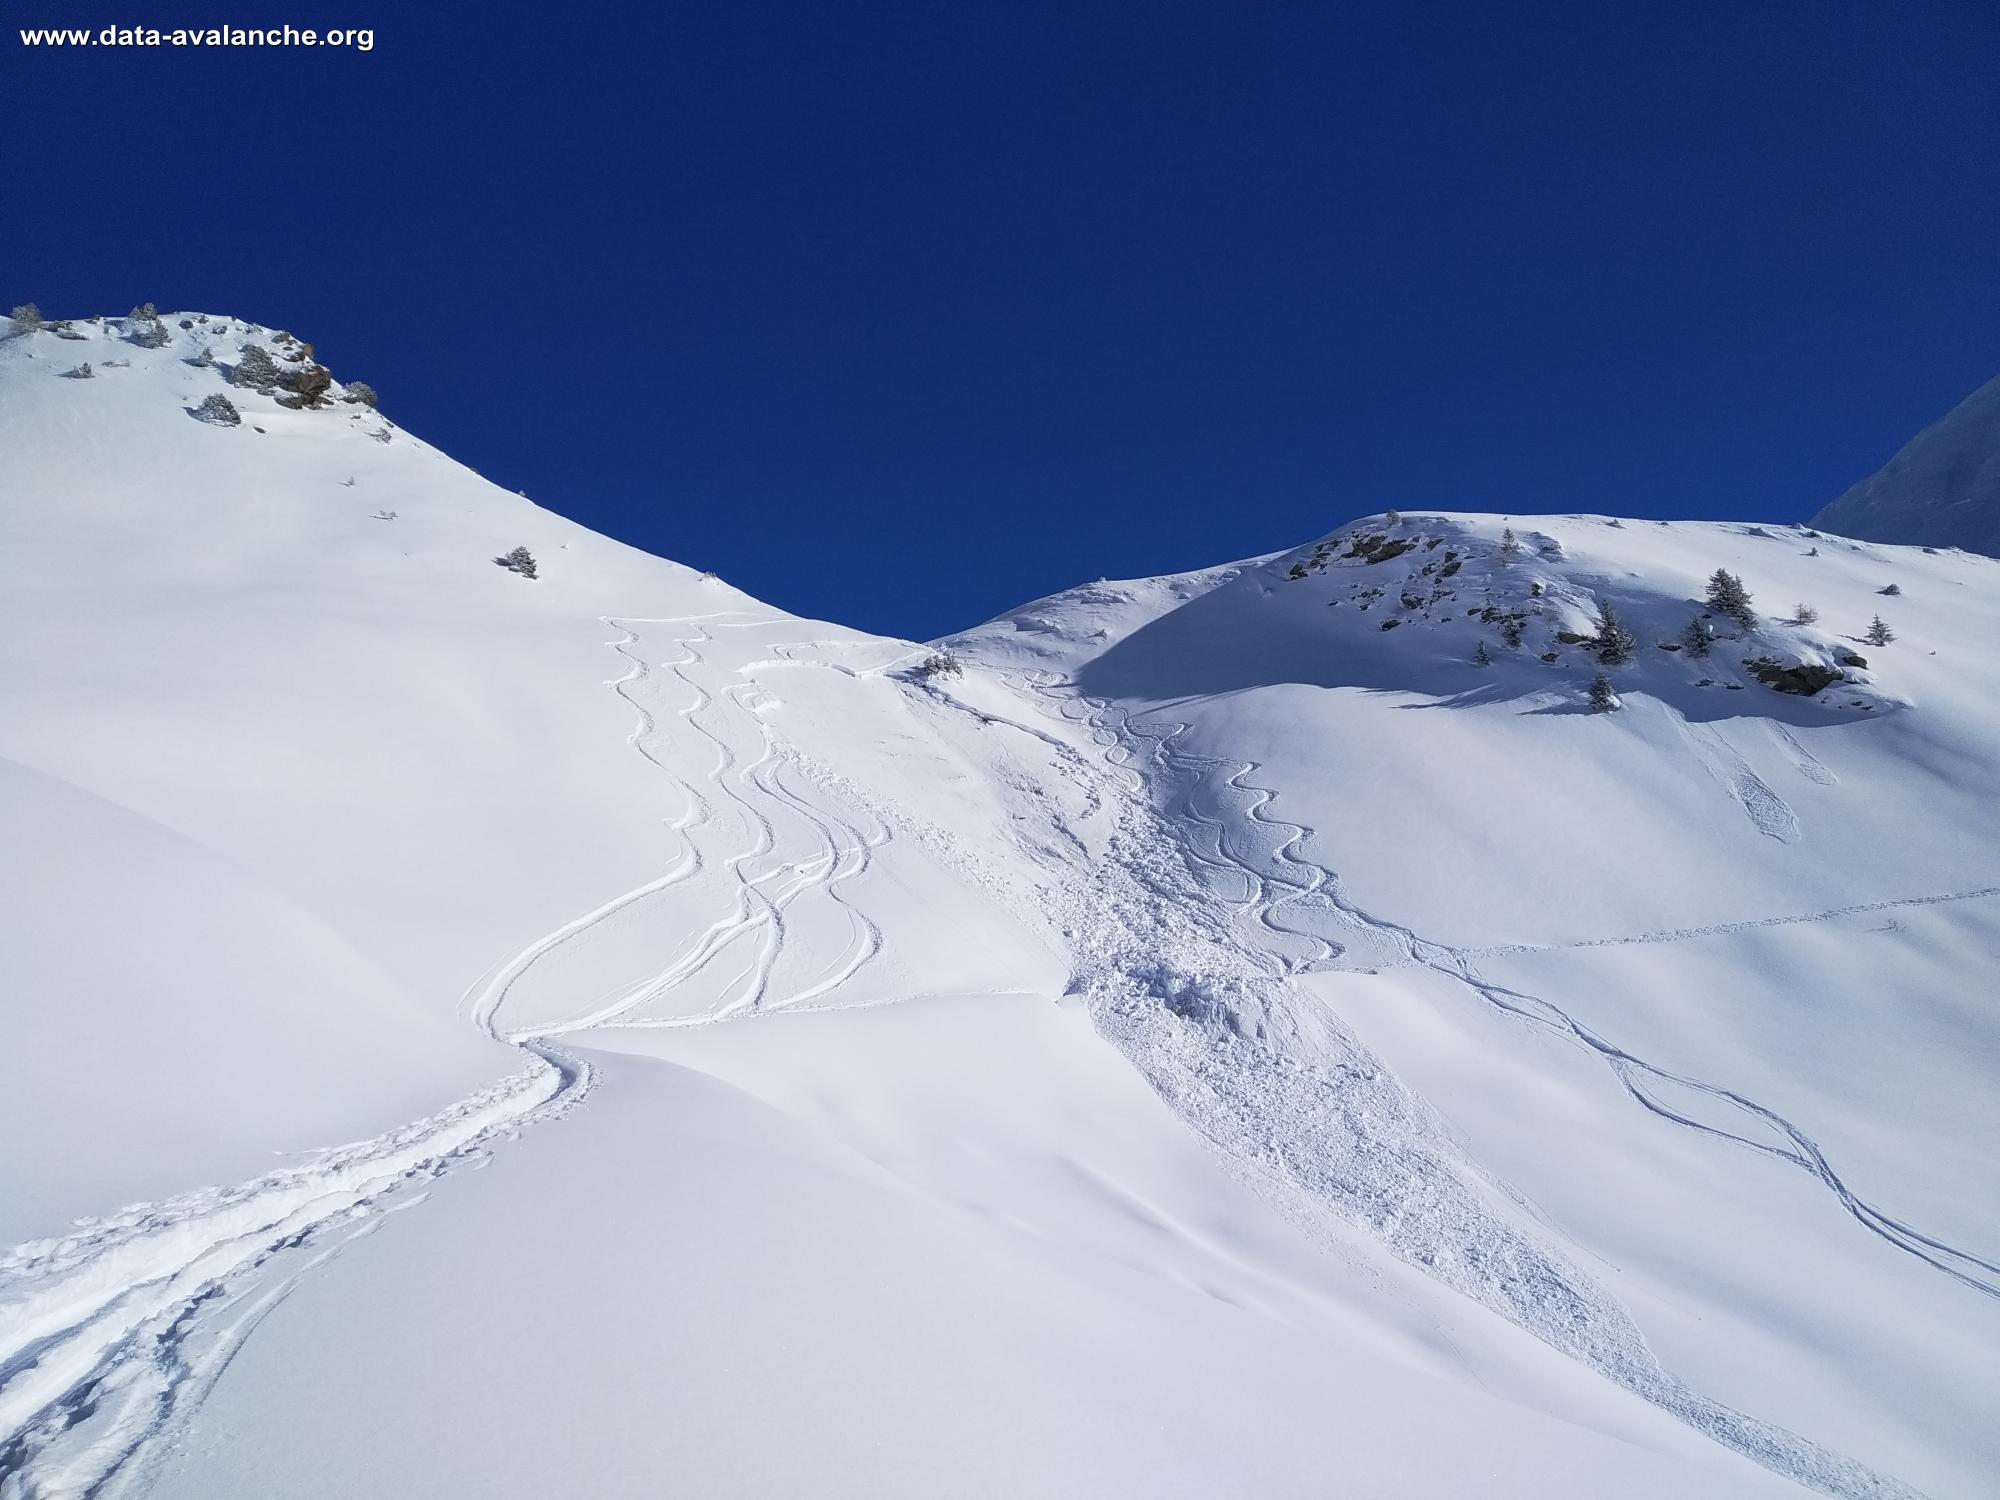 Avalanche Vanoise, secteur Mont Jovet, Mont Jovet - Photo 1 - © Laurent Vinit